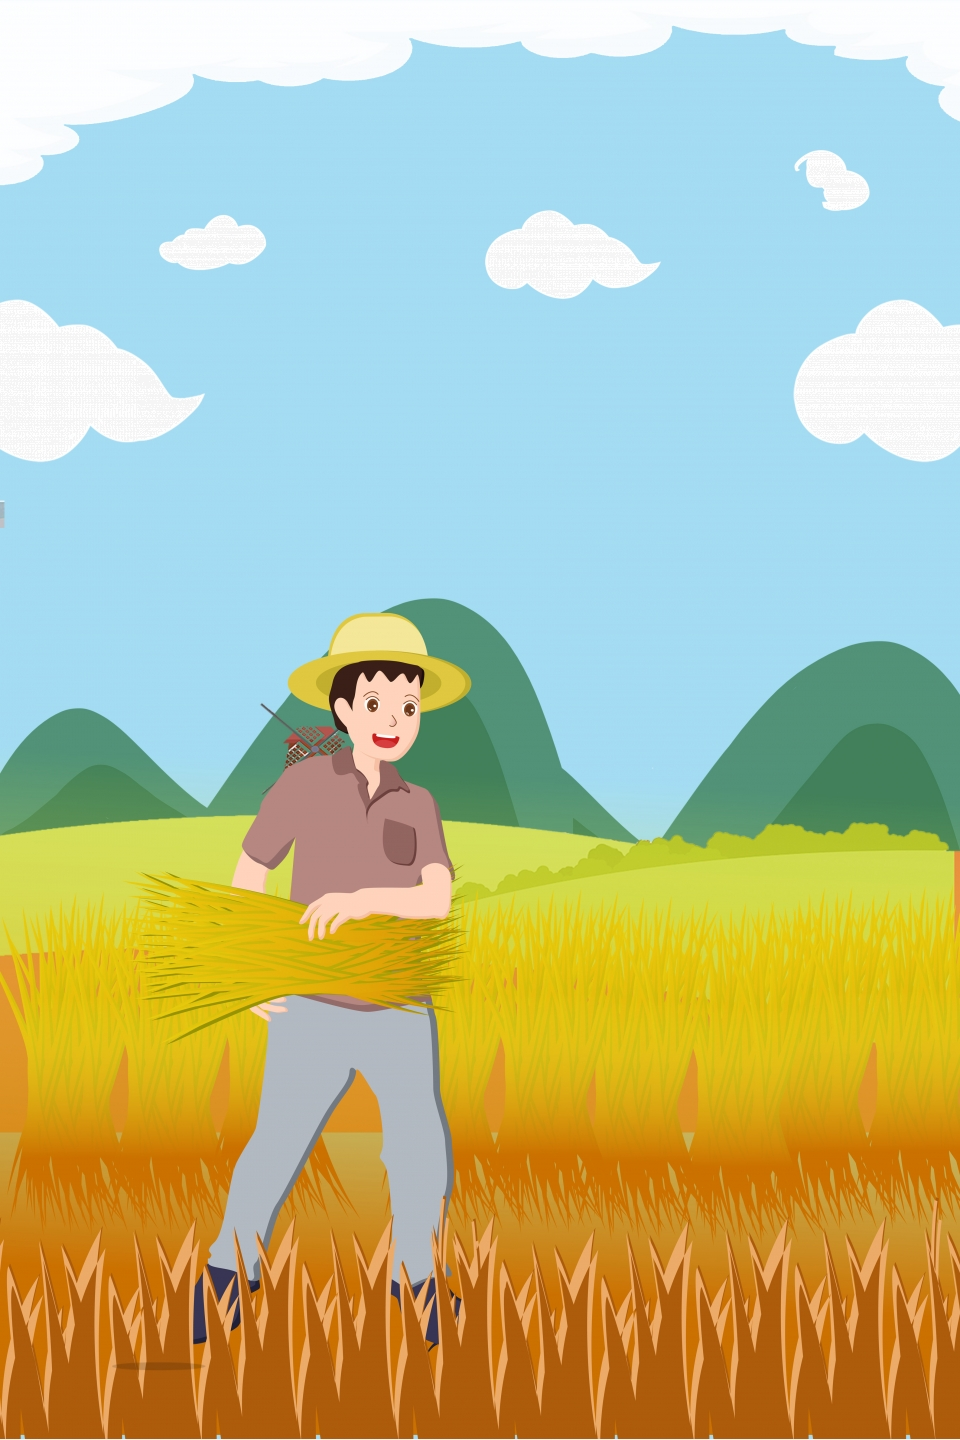 Labor Day Cartoon Farmer Background Farmer May Day Working People Background Image For Free Download